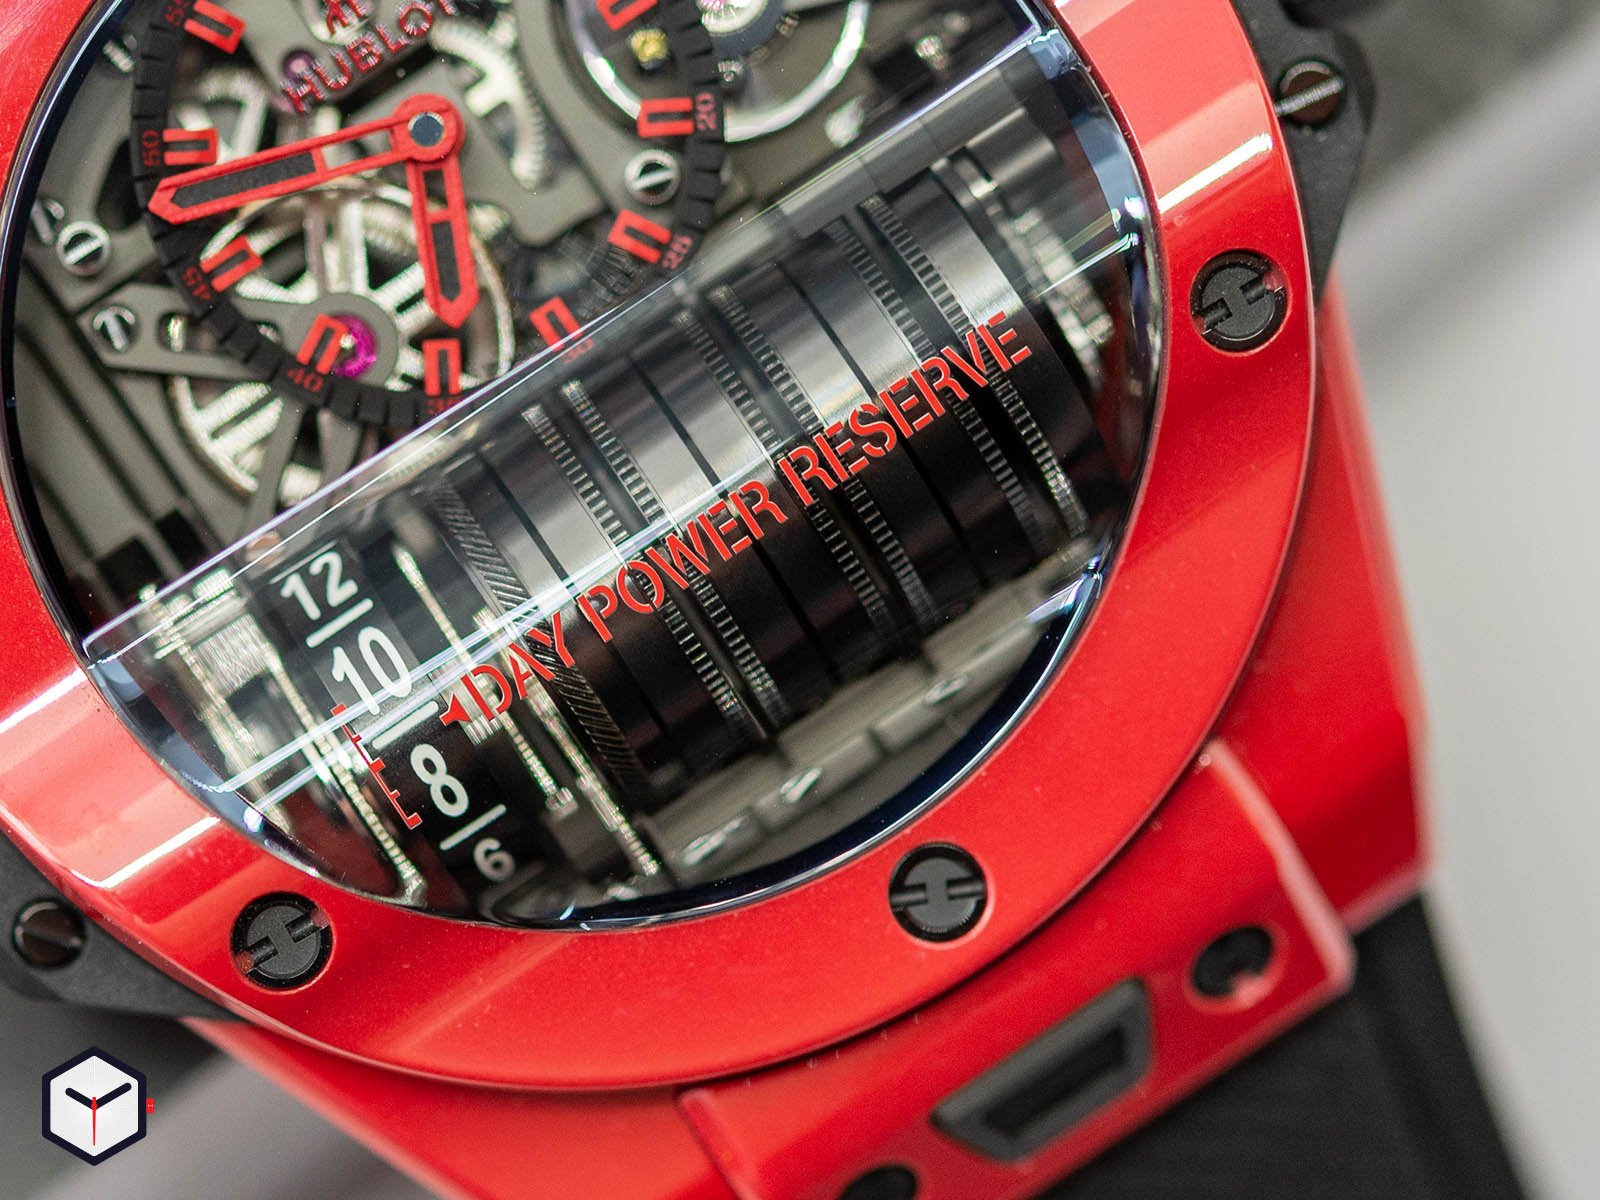 911-cf-0113-rx-hublot-big-bang-mp-11-red-magic-3.jpg